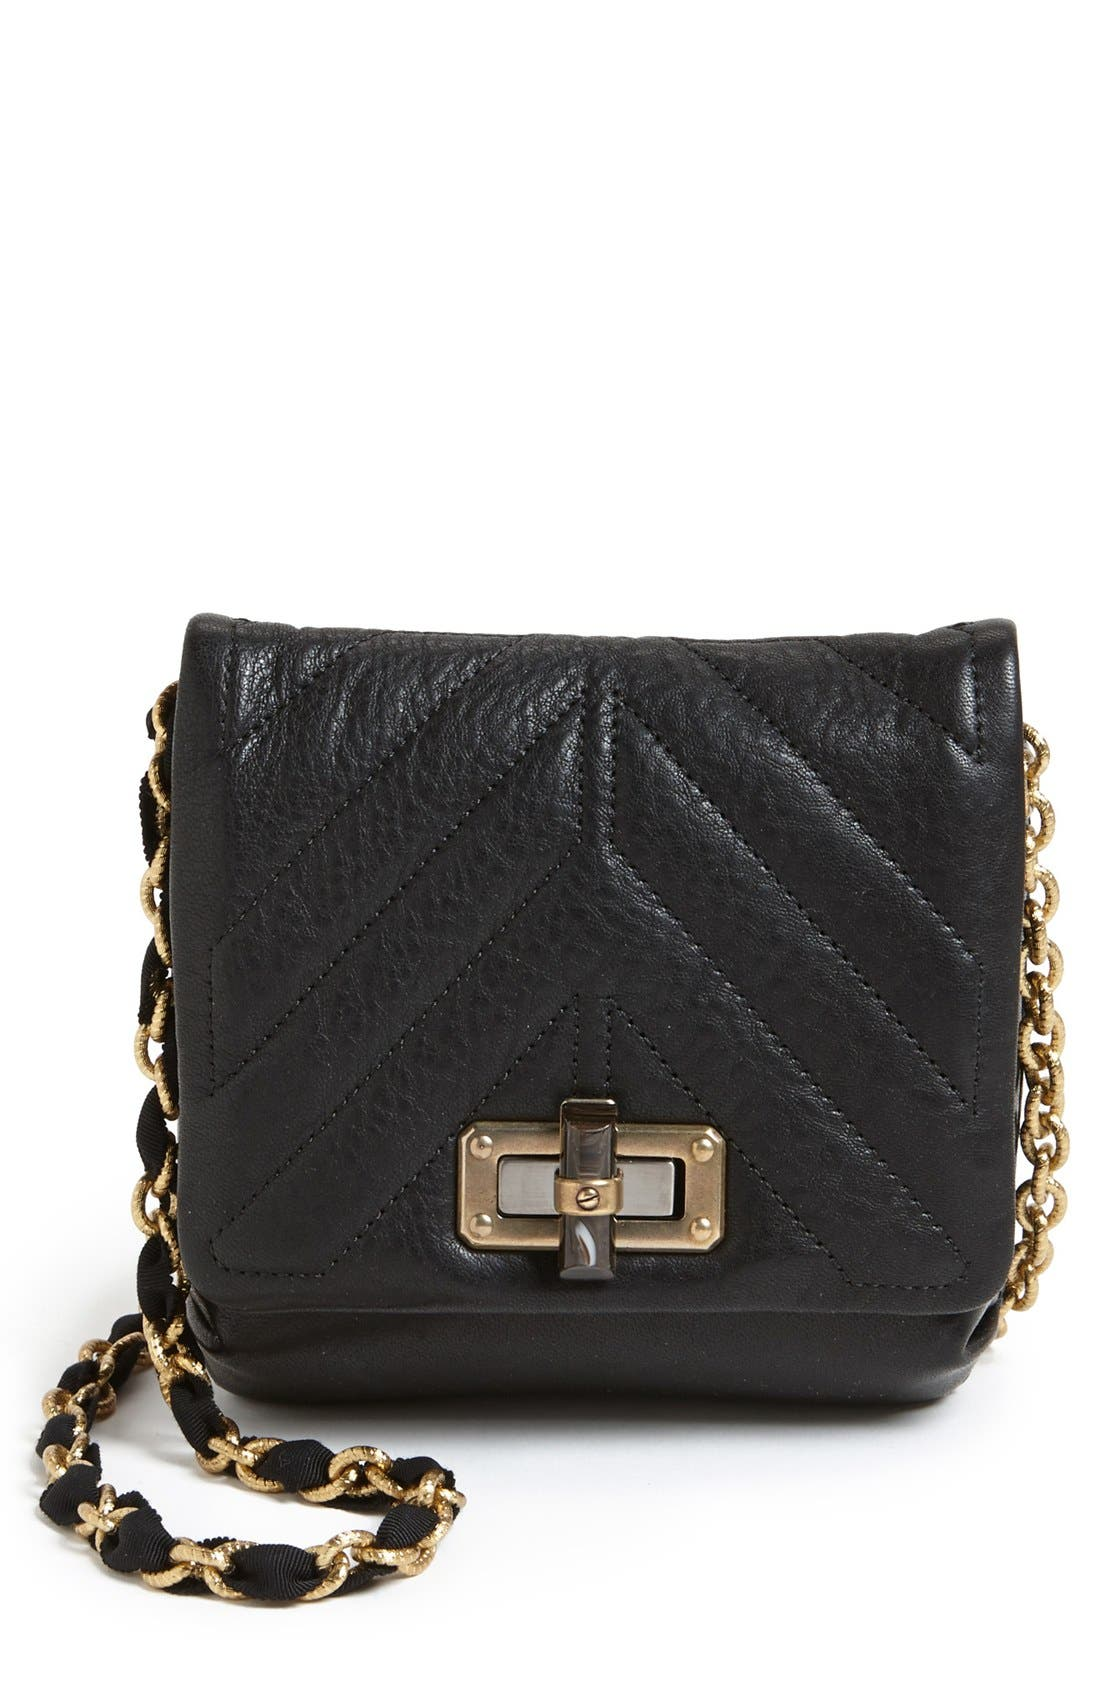 Alternate Image 1 Selected - Lanvin 'Happy - Mini' Leather Crossbody Bag